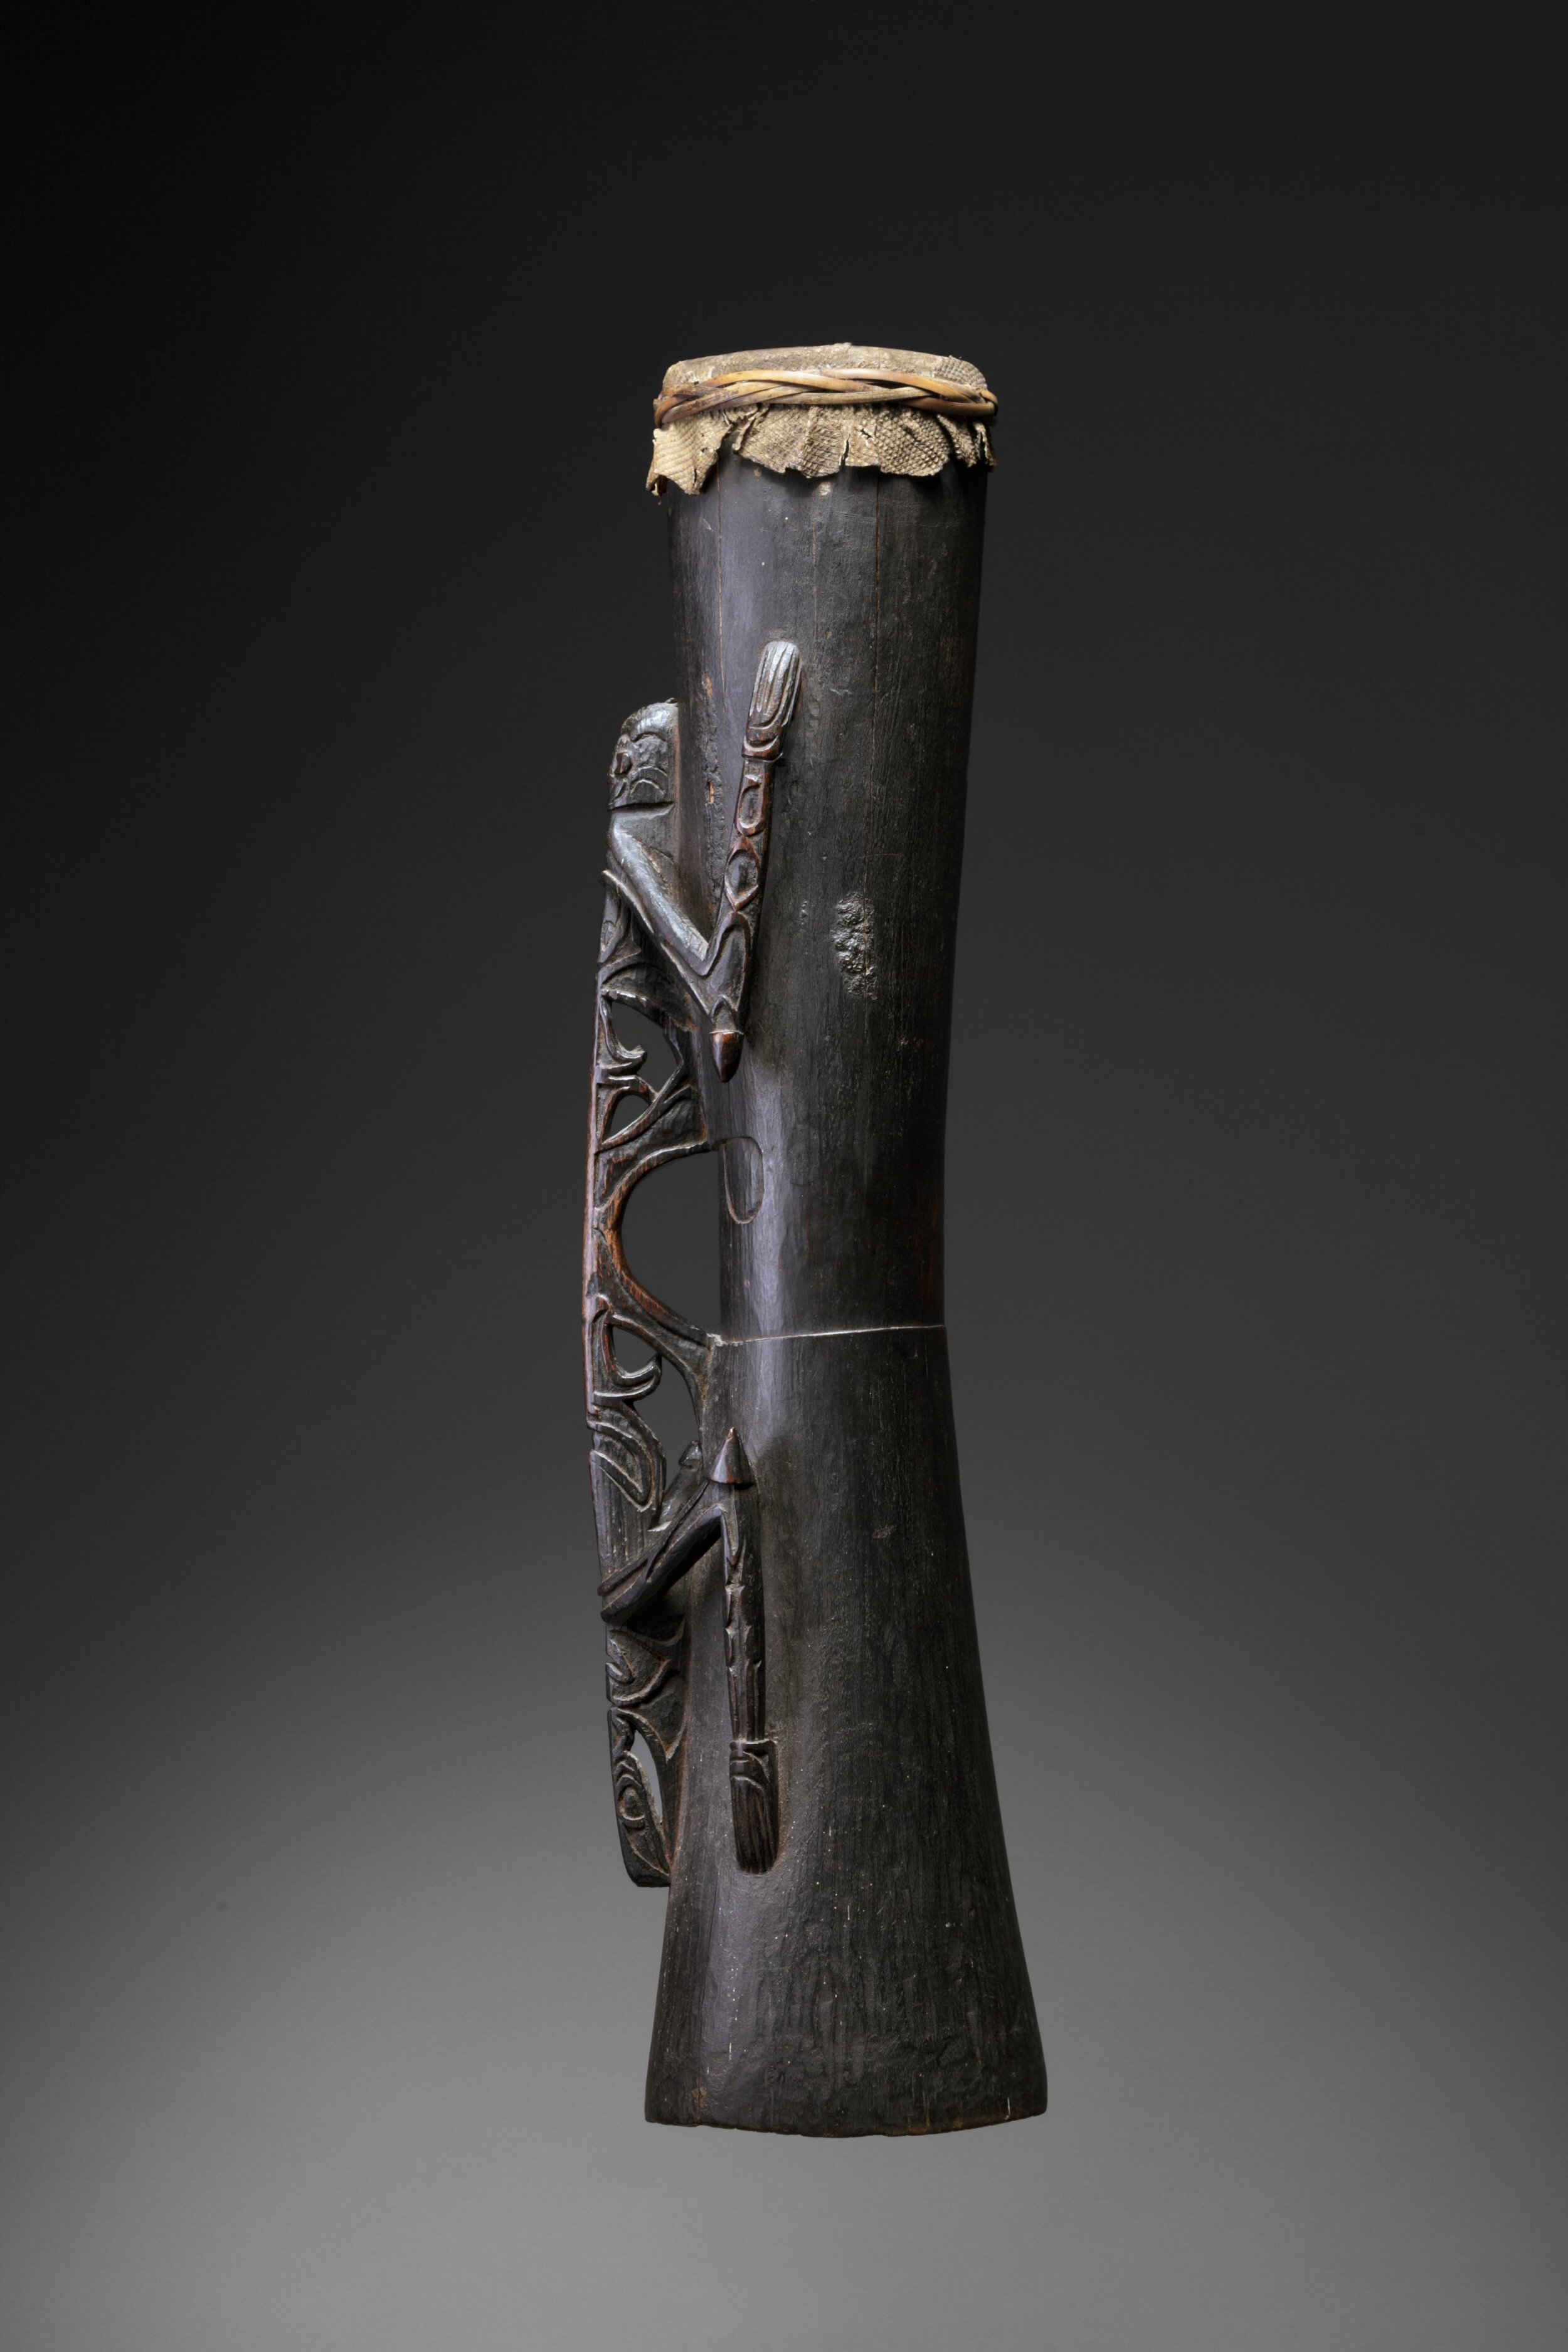 Drum - Asmat, Papua Barat, Indonesia - Material: Wood, Rattan, Lizard Skin - Height 88 centimeters - Provenance: This Asmat drum was, on the occasion of his departure from Asmat, donated to J.H.M.C. Boelaars MSC, by the staff of the diocese Agats, as a token of appreciation for his ethnographic research in the Asmat area. Photo Jan van Esch